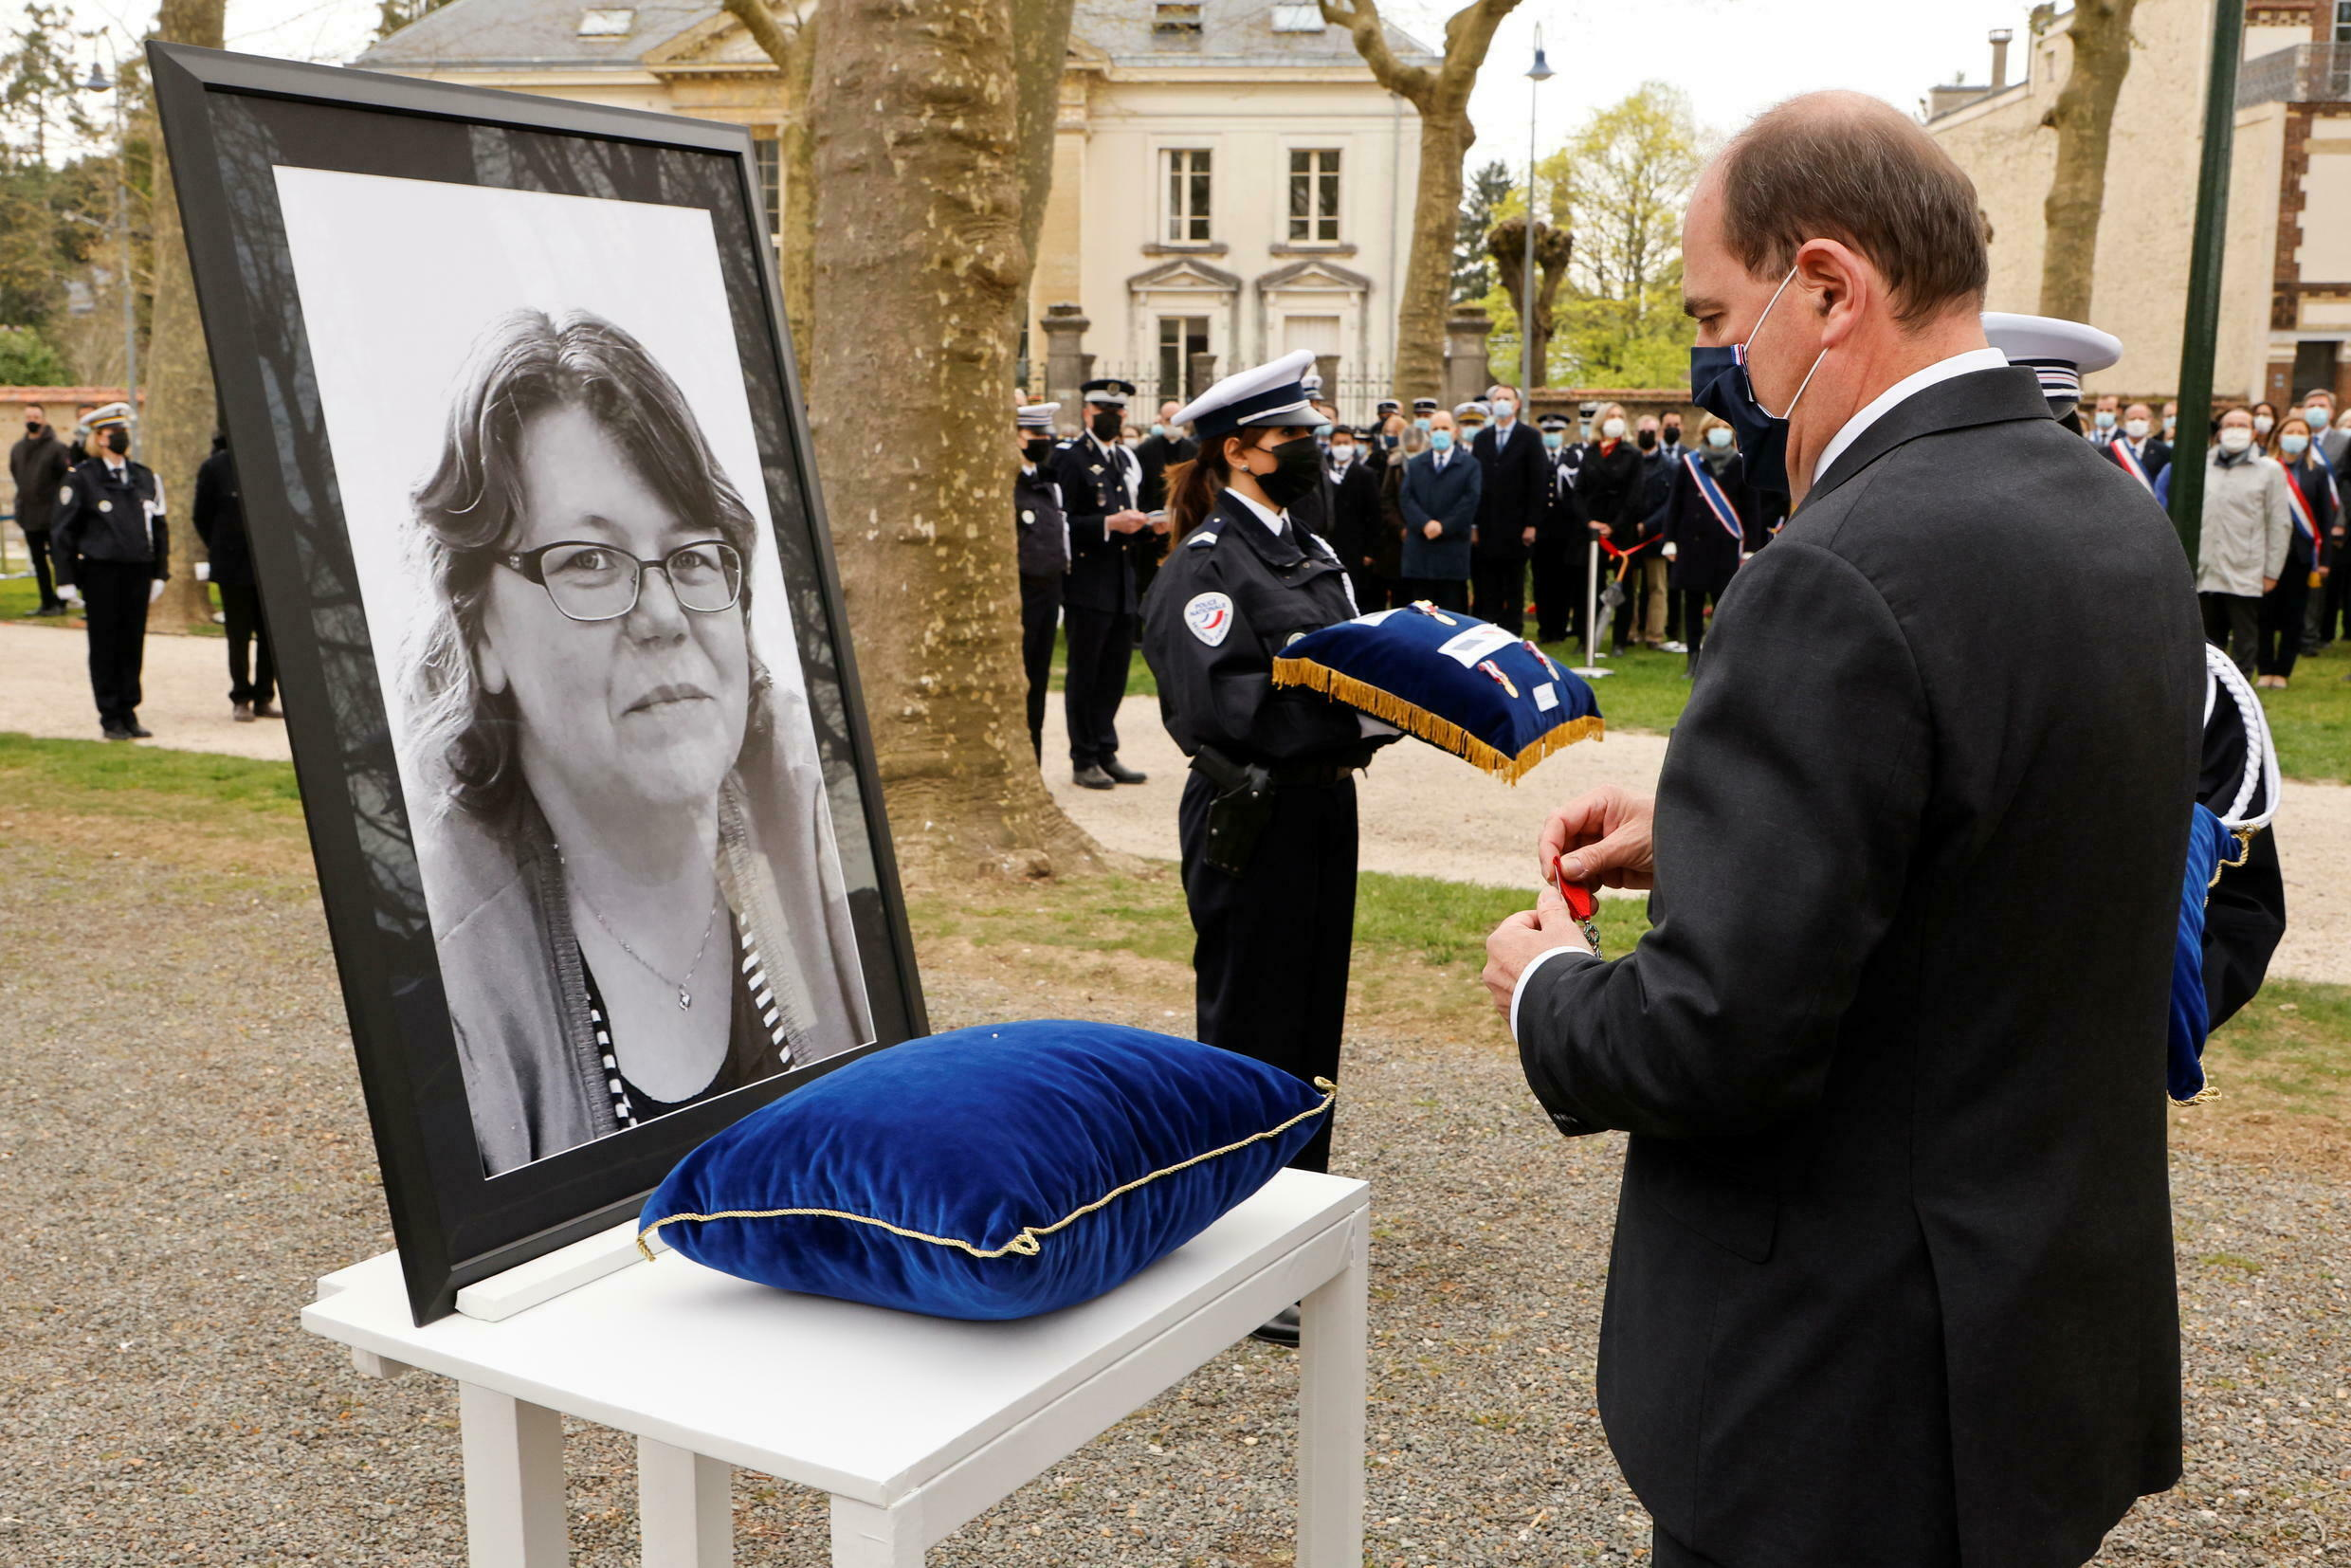 2021-04-30T092947Z_798743880_RC296N9D4OXJ_RTRMADP_3_FRANCE-SECURITY-TRIBUTE (1)